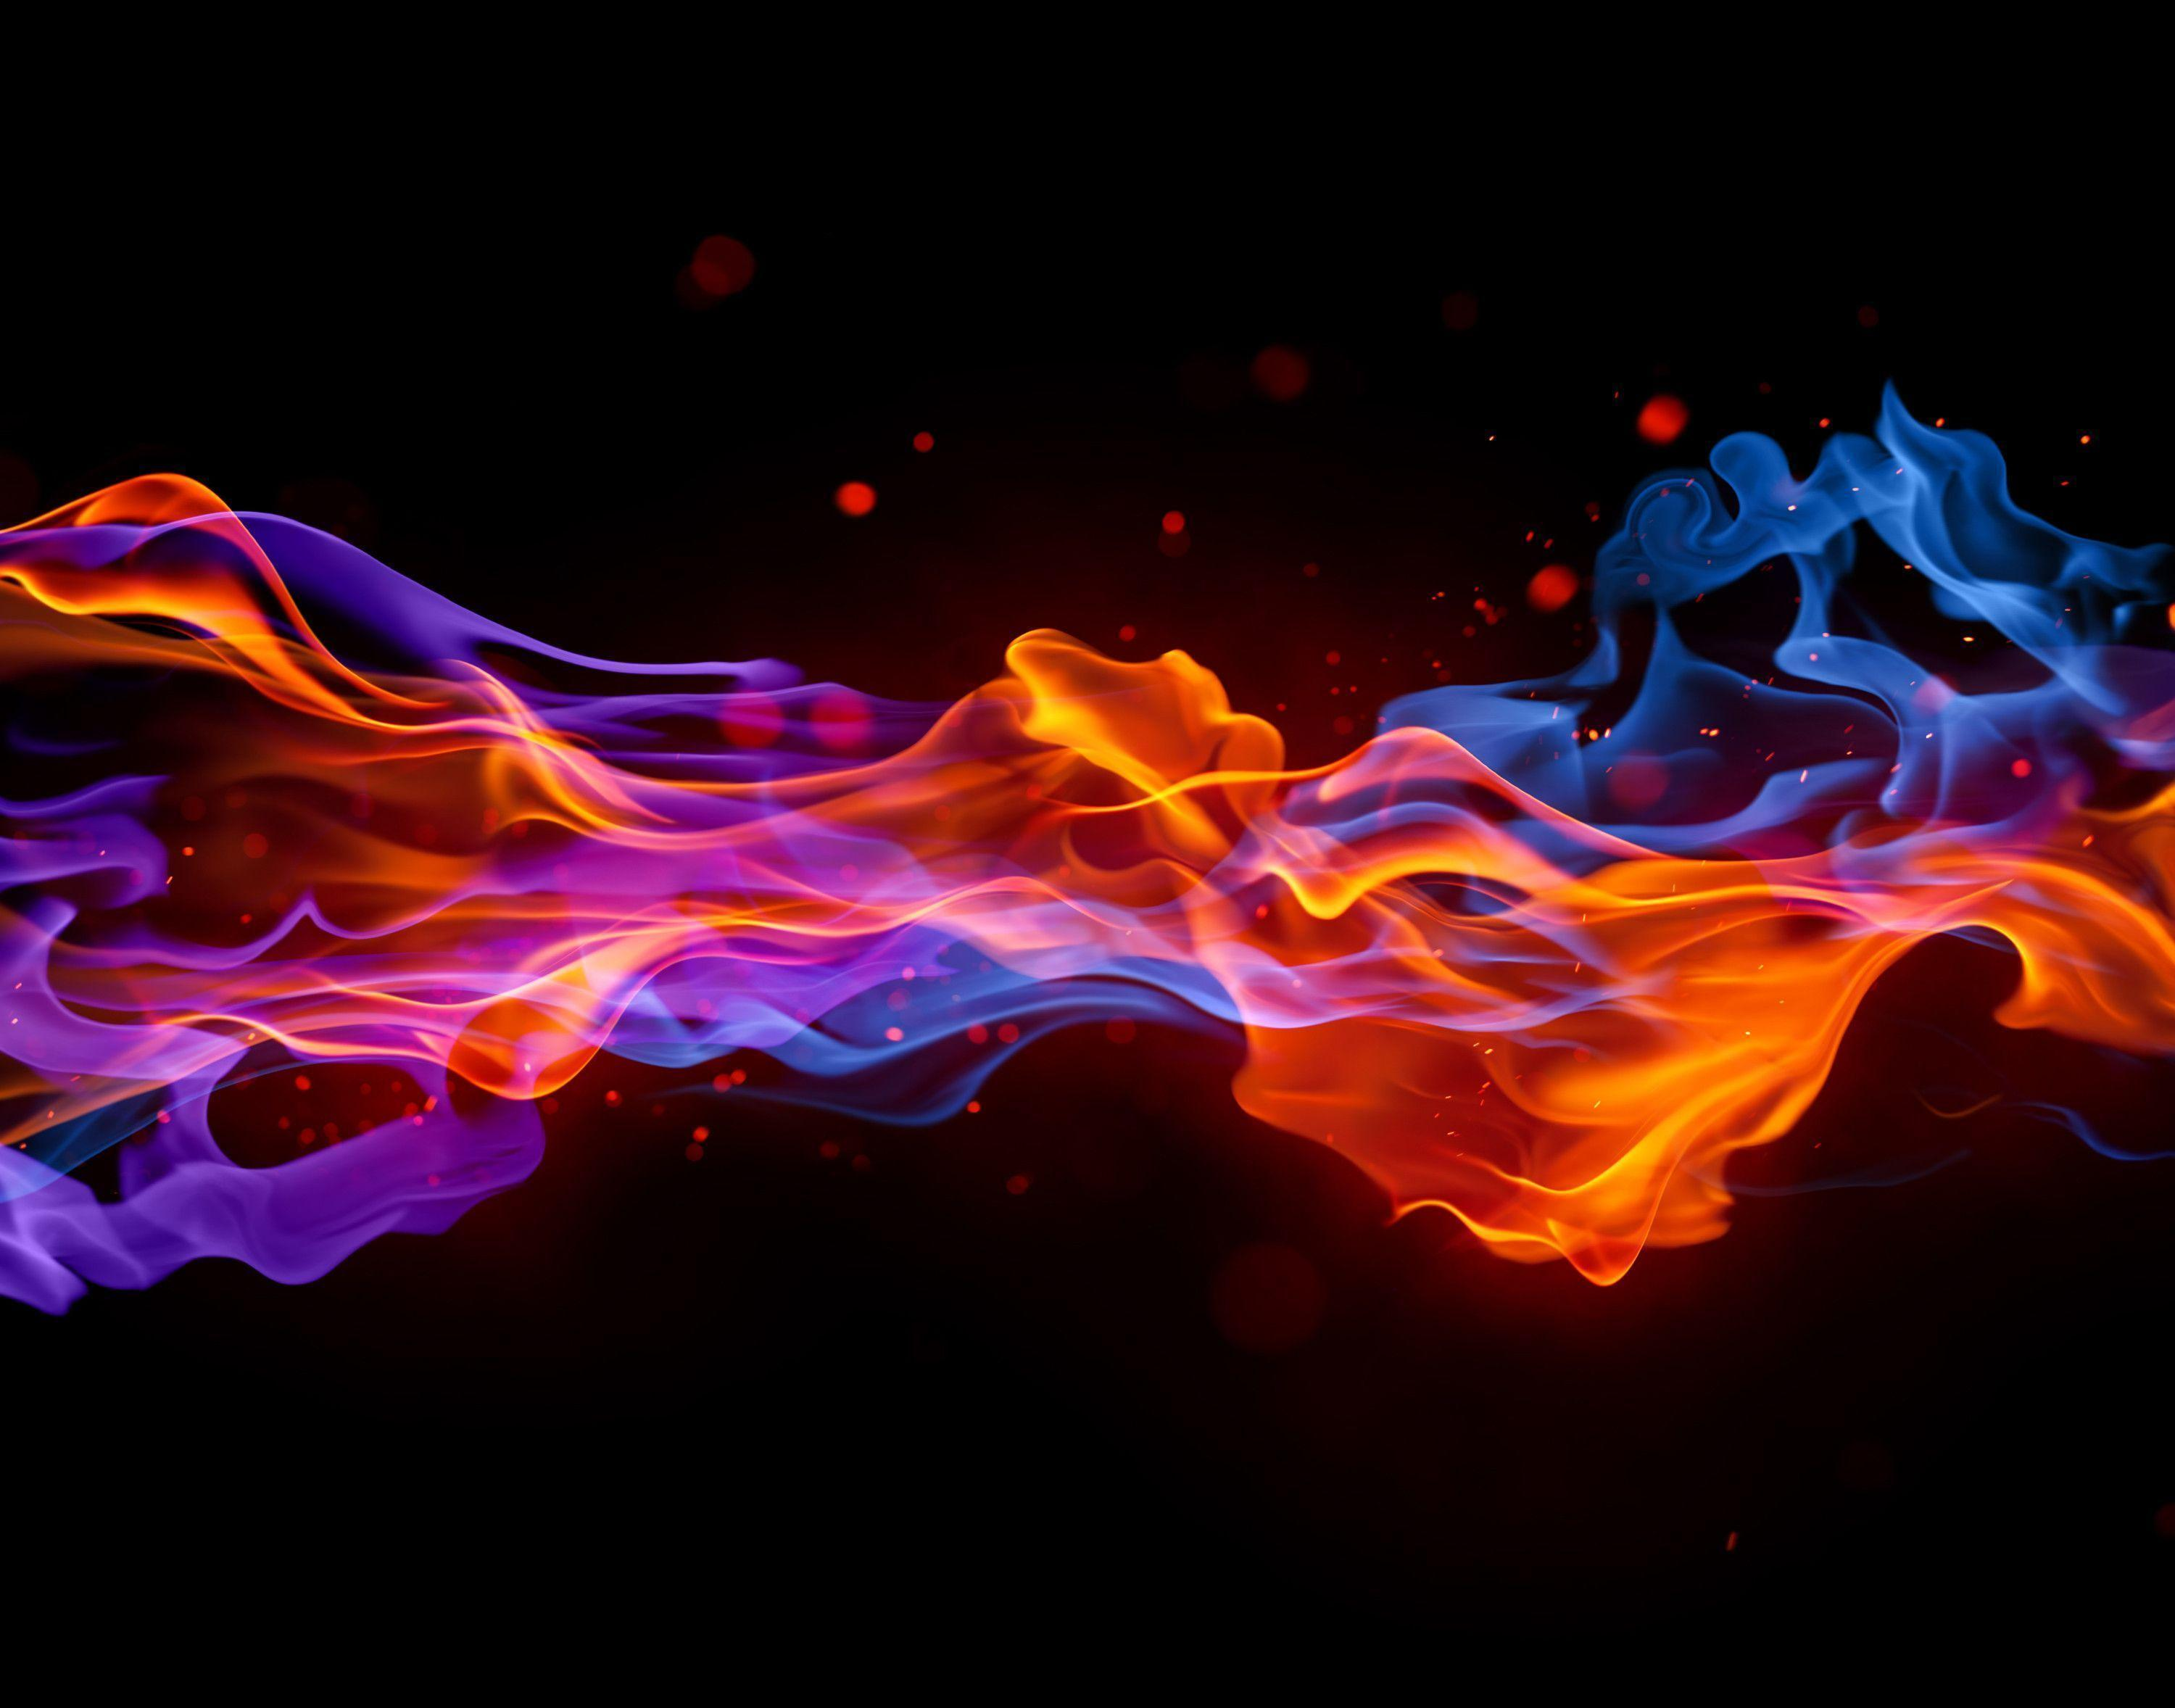 Fire Backgrounds Image - Wallpaper Cave